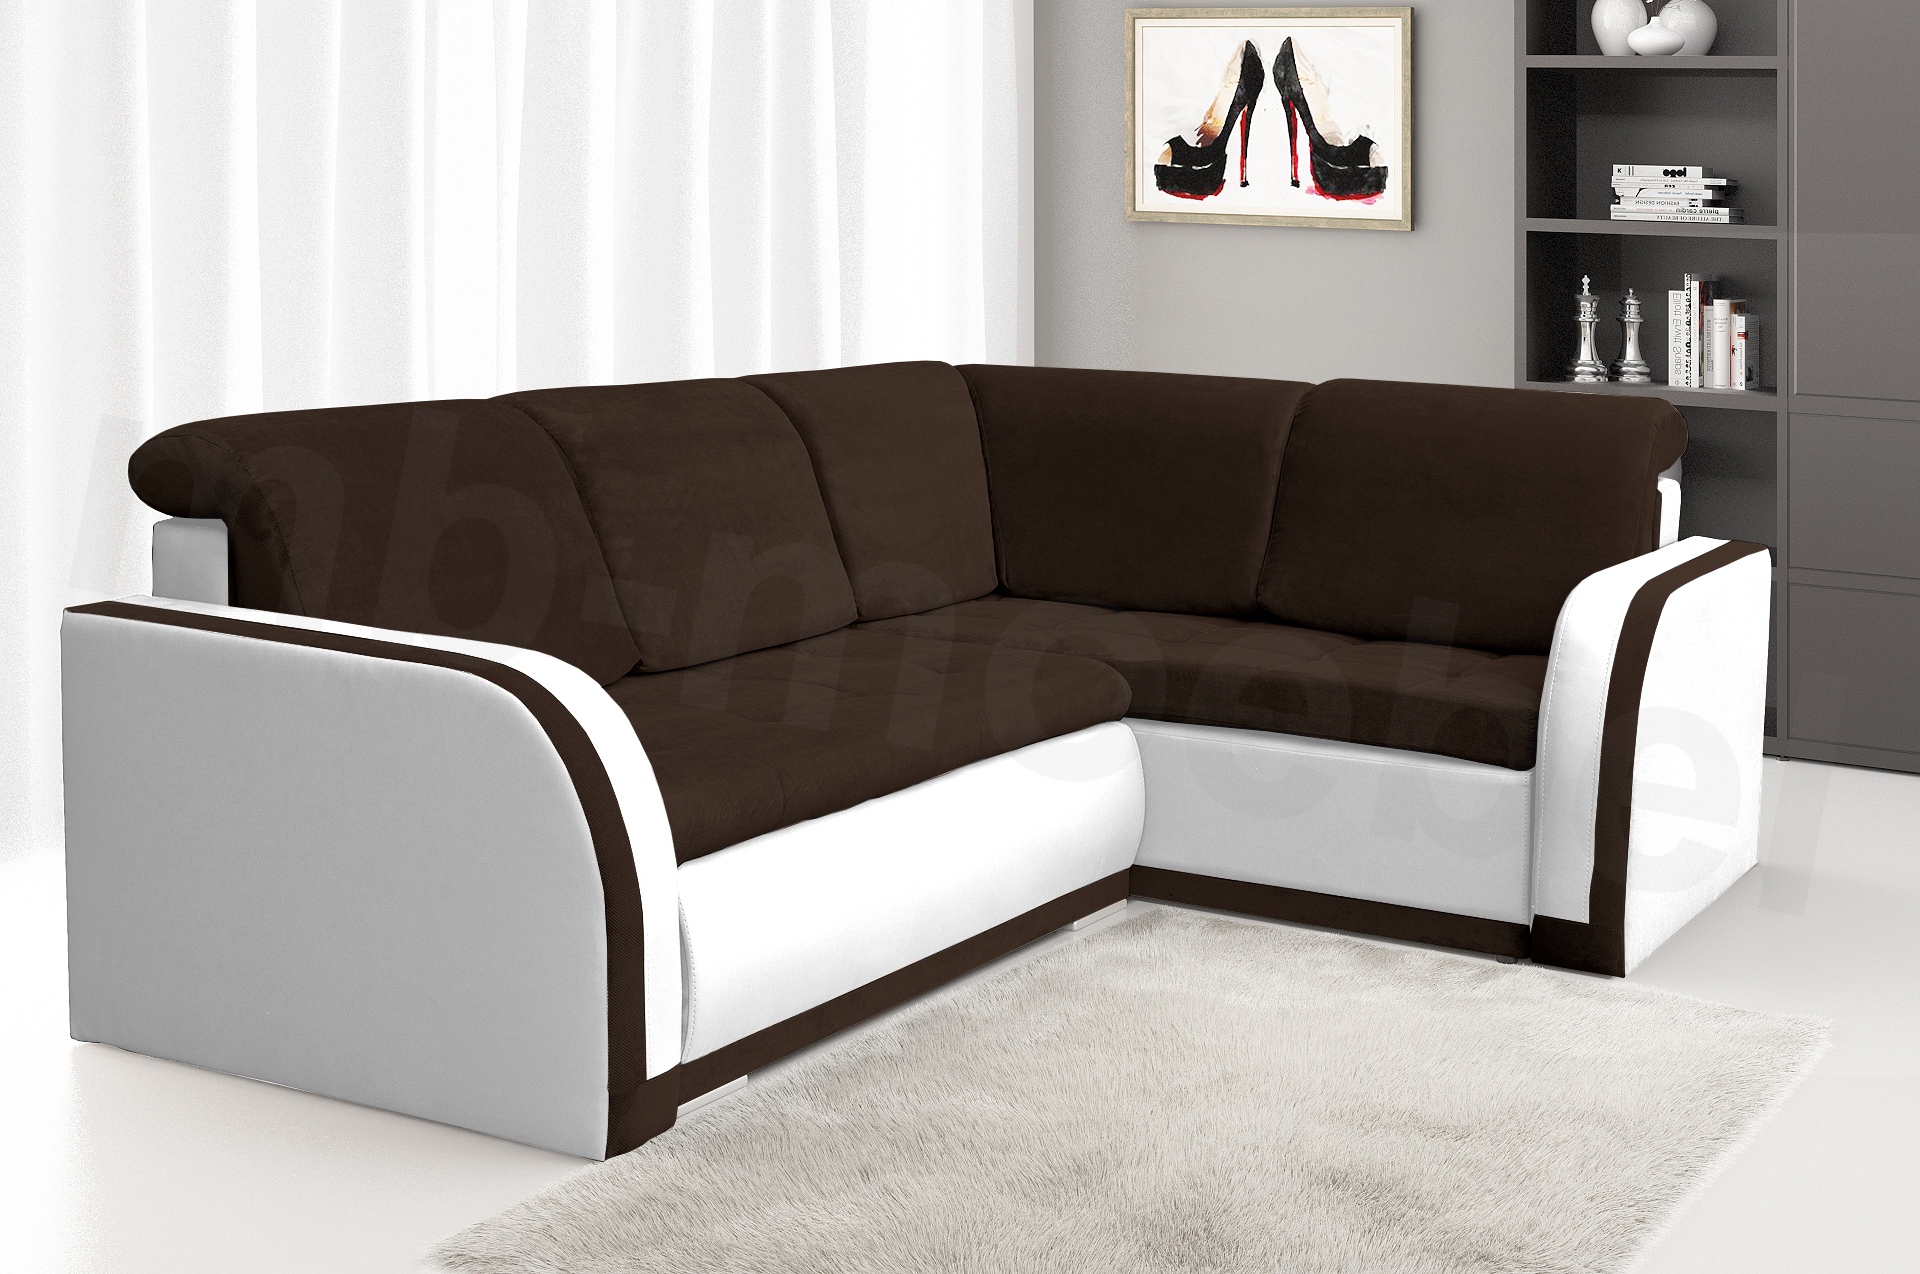 moderne ecksofa sofa eckcouch ottomane federkern l form braun wei xxl vero iii ebay. Black Bedroom Furniture Sets. Home Design Ideas